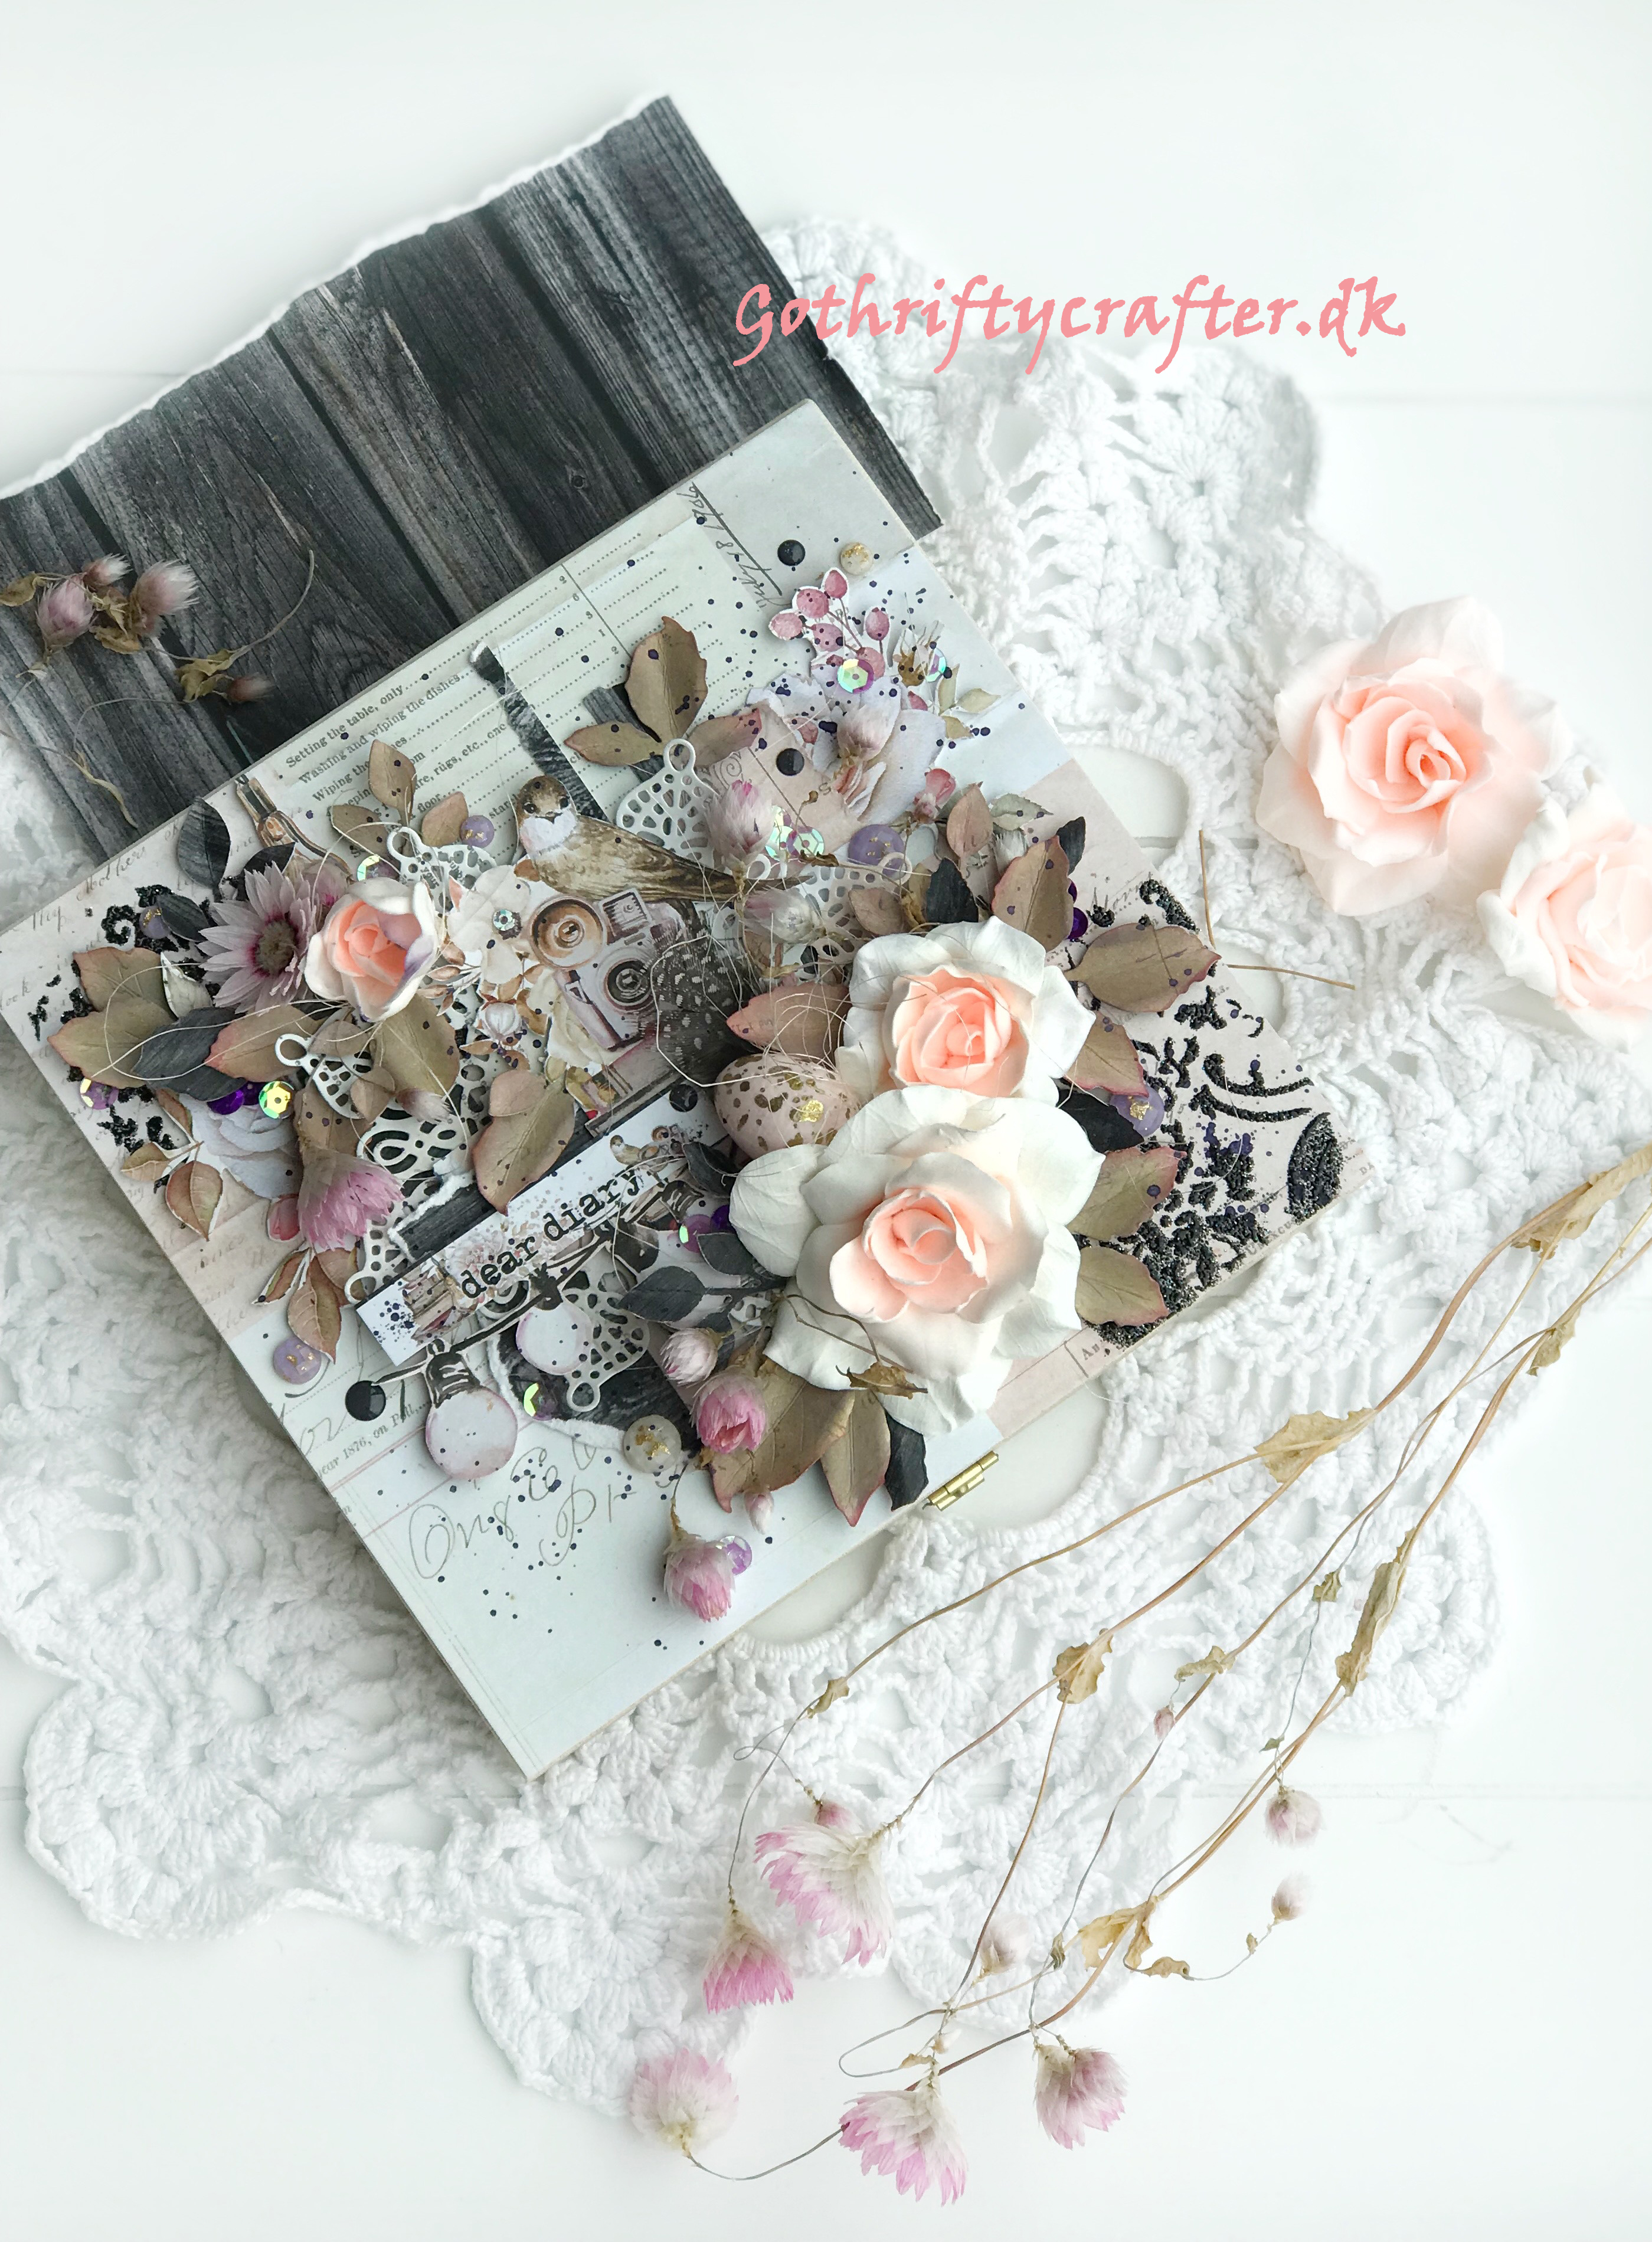 Scrapbooking Mintay dear diary paper Gothriftycrafter makeover wood box rose flower bird fussy cut featherjpg